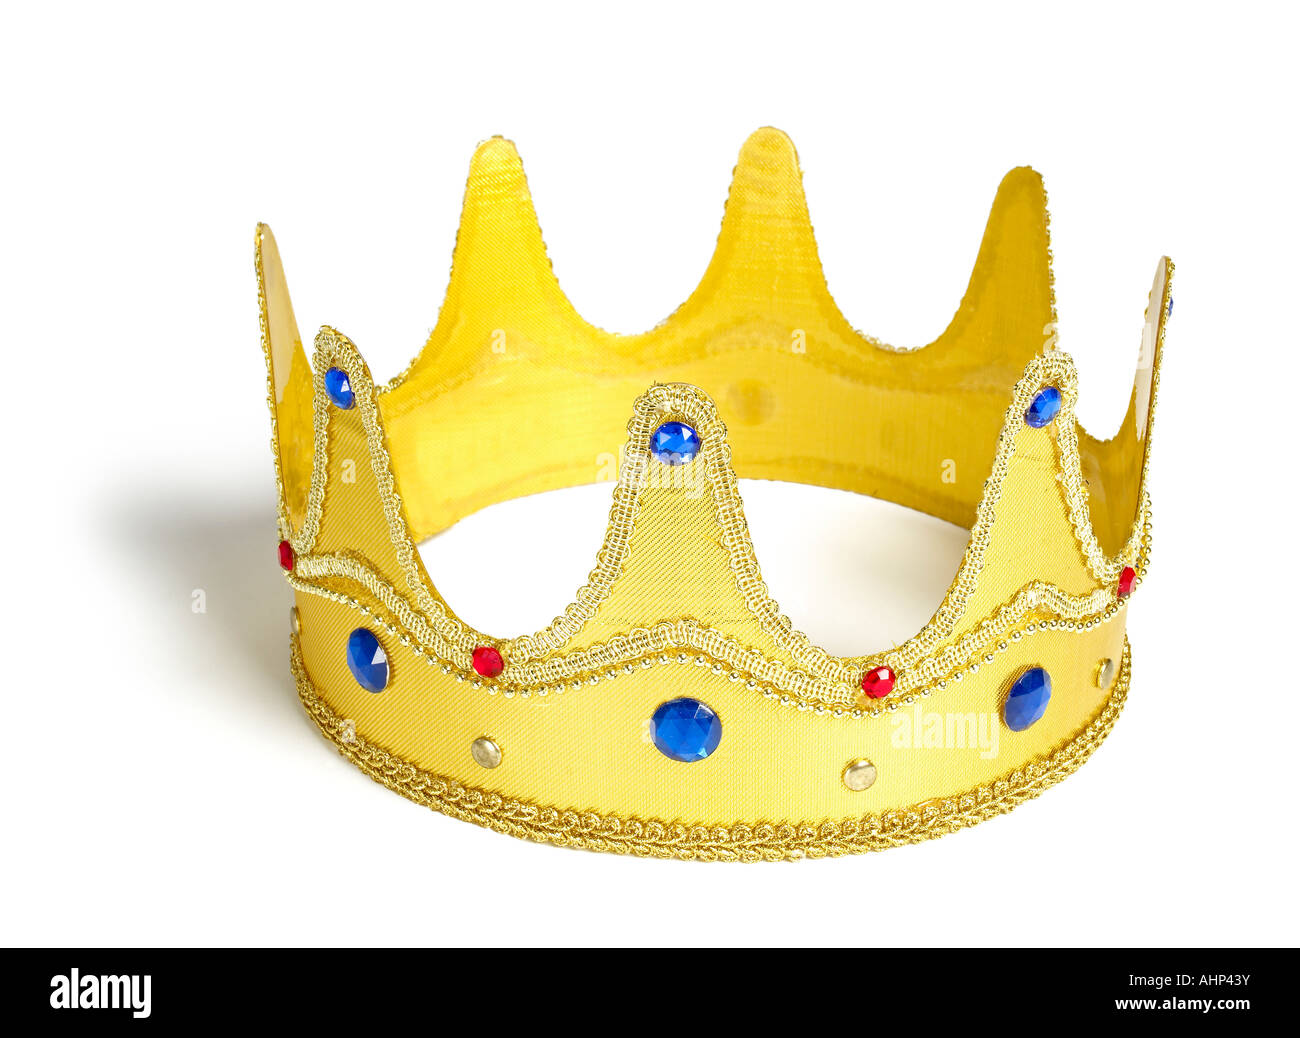 Gold jeweled crown hat - Stock Image